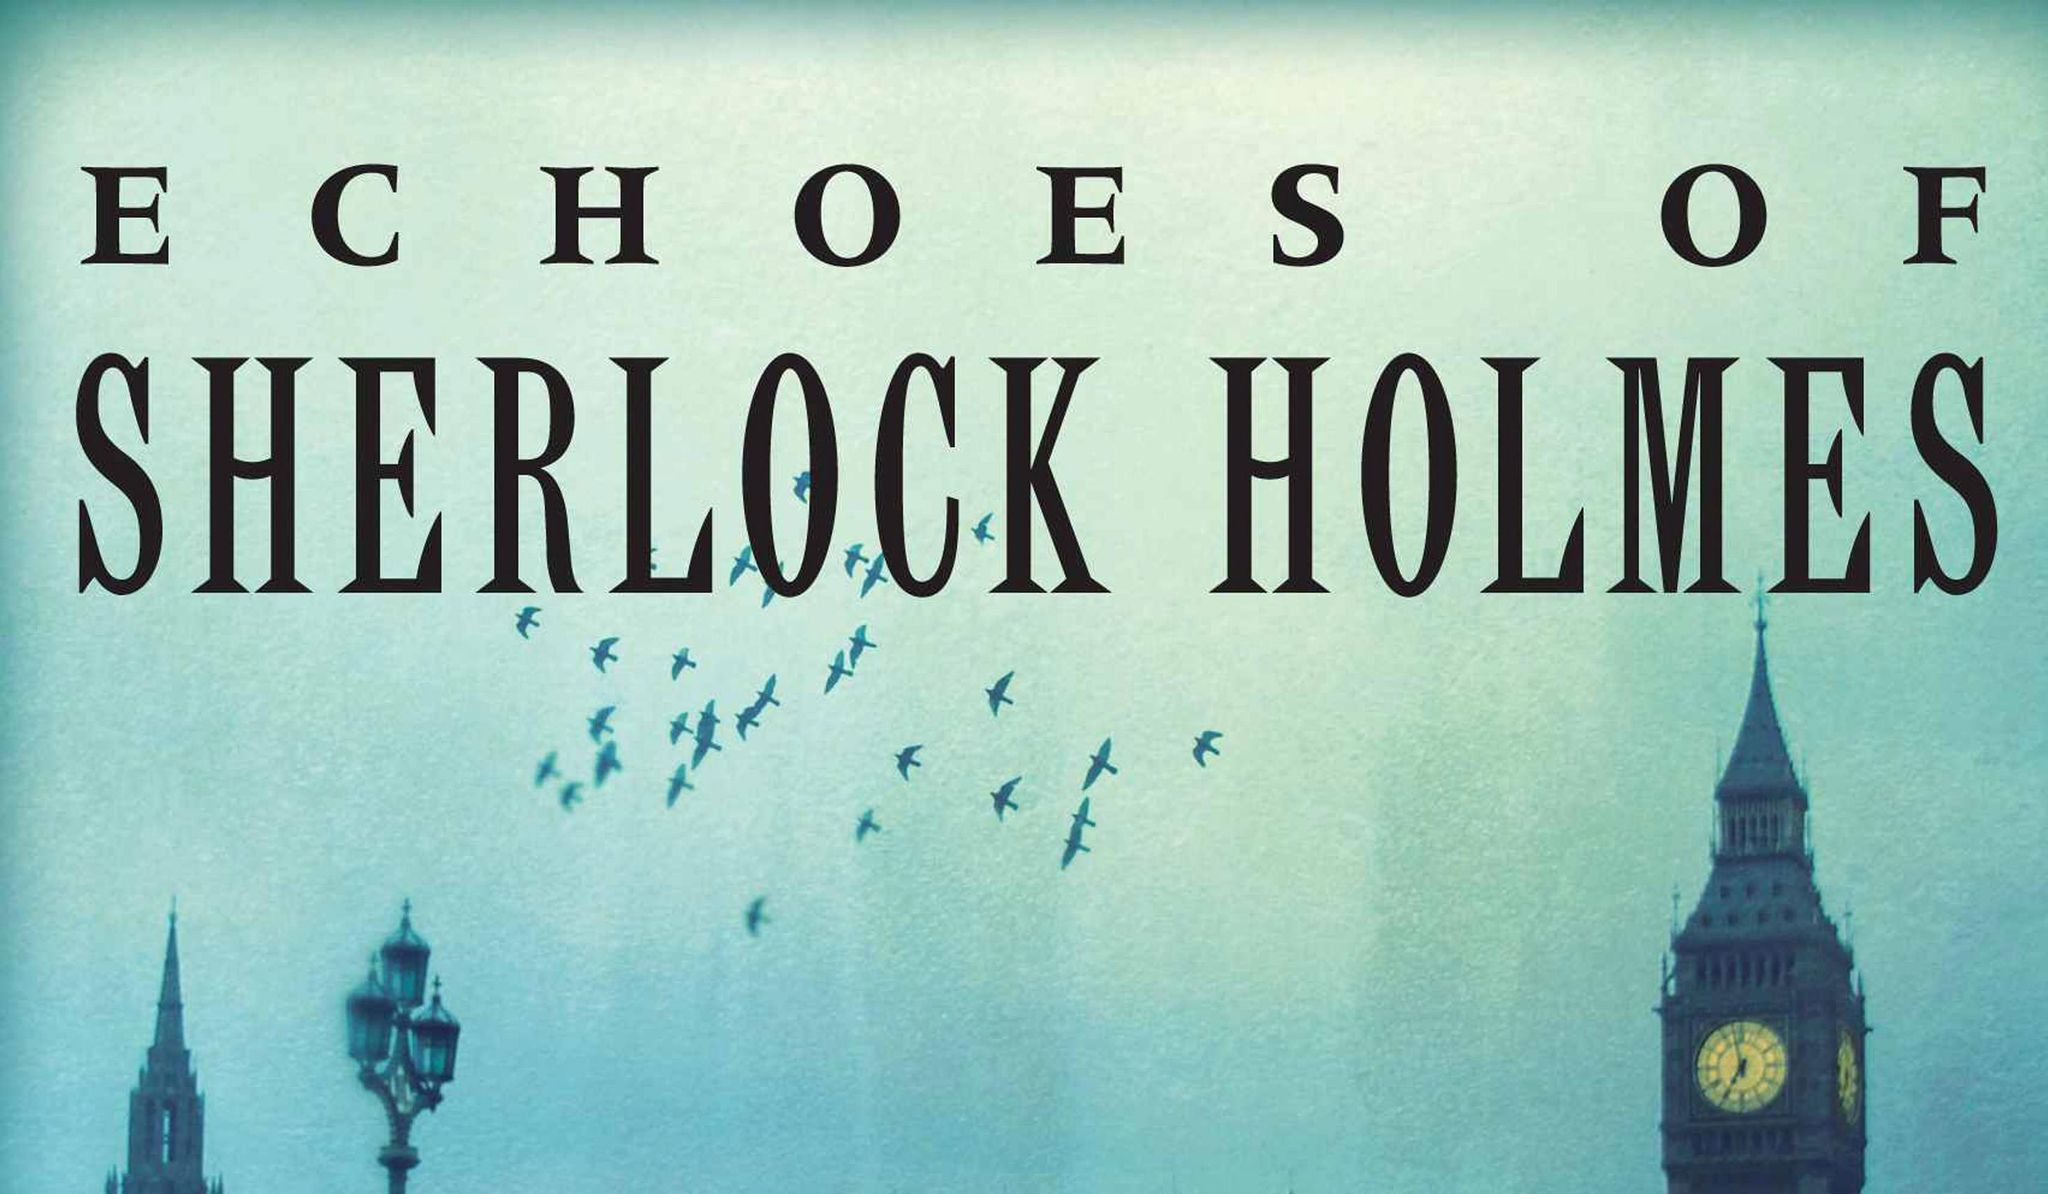 BOOK REVIEW: 'Echoes of Sherlock Holmes: Stories Inspired by the Holmes Canon'